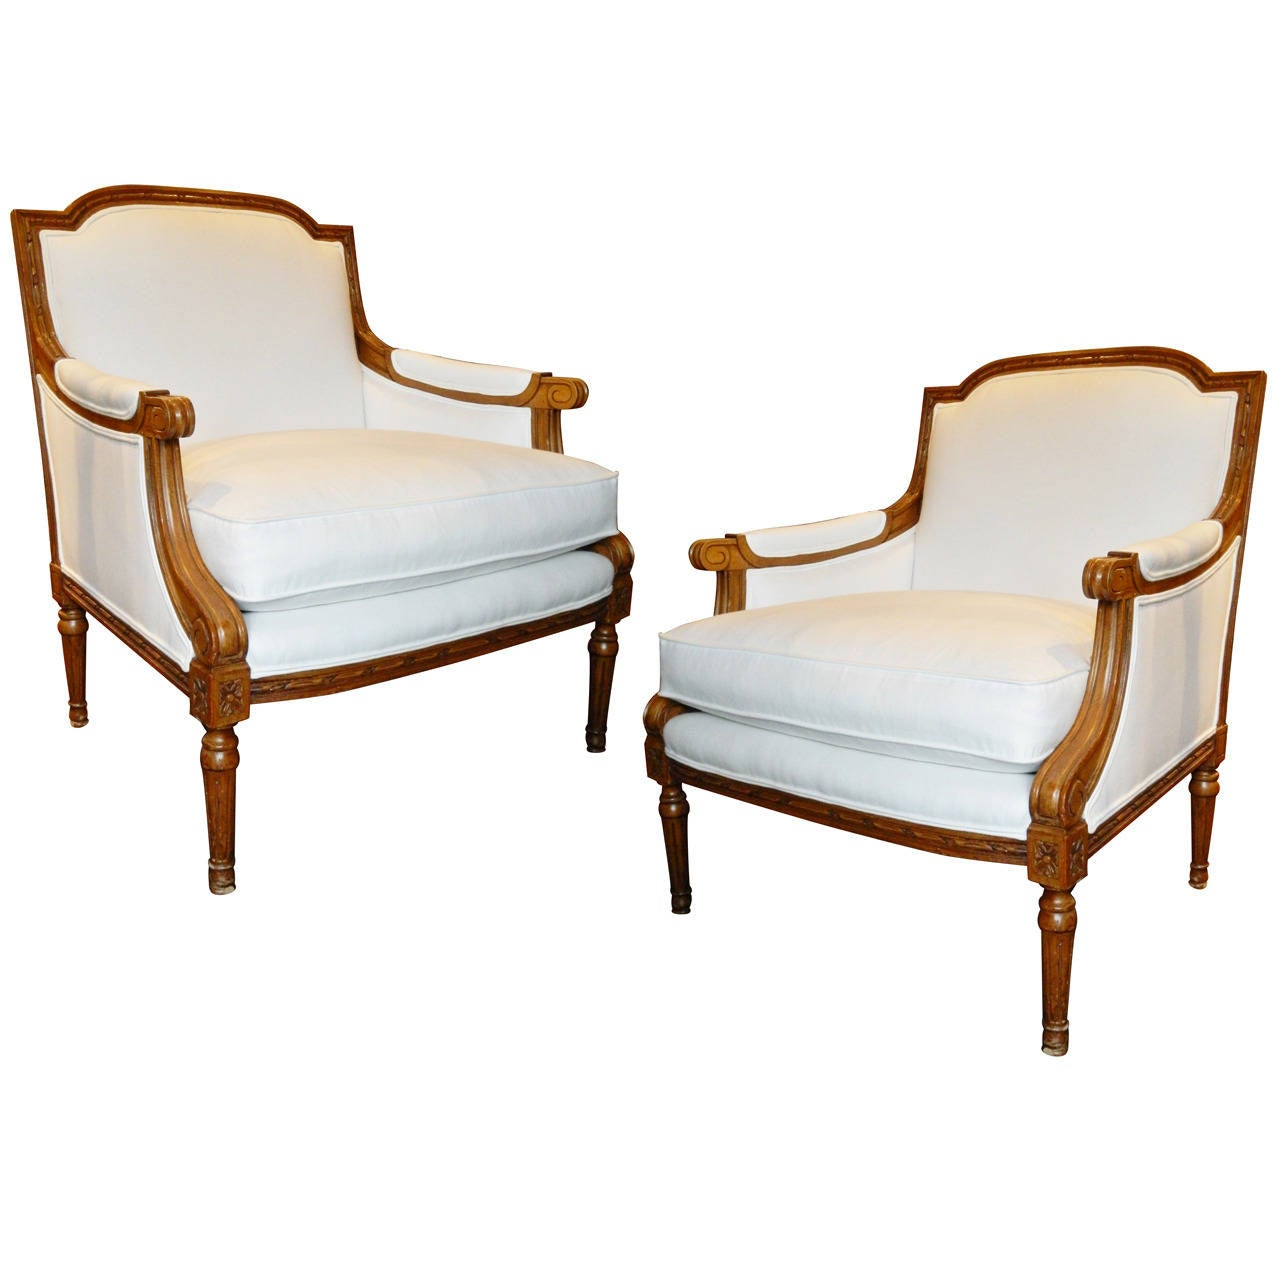 Early 20th Century Pair Of Upholstered Bergere Chairs In The Louis XVI Style